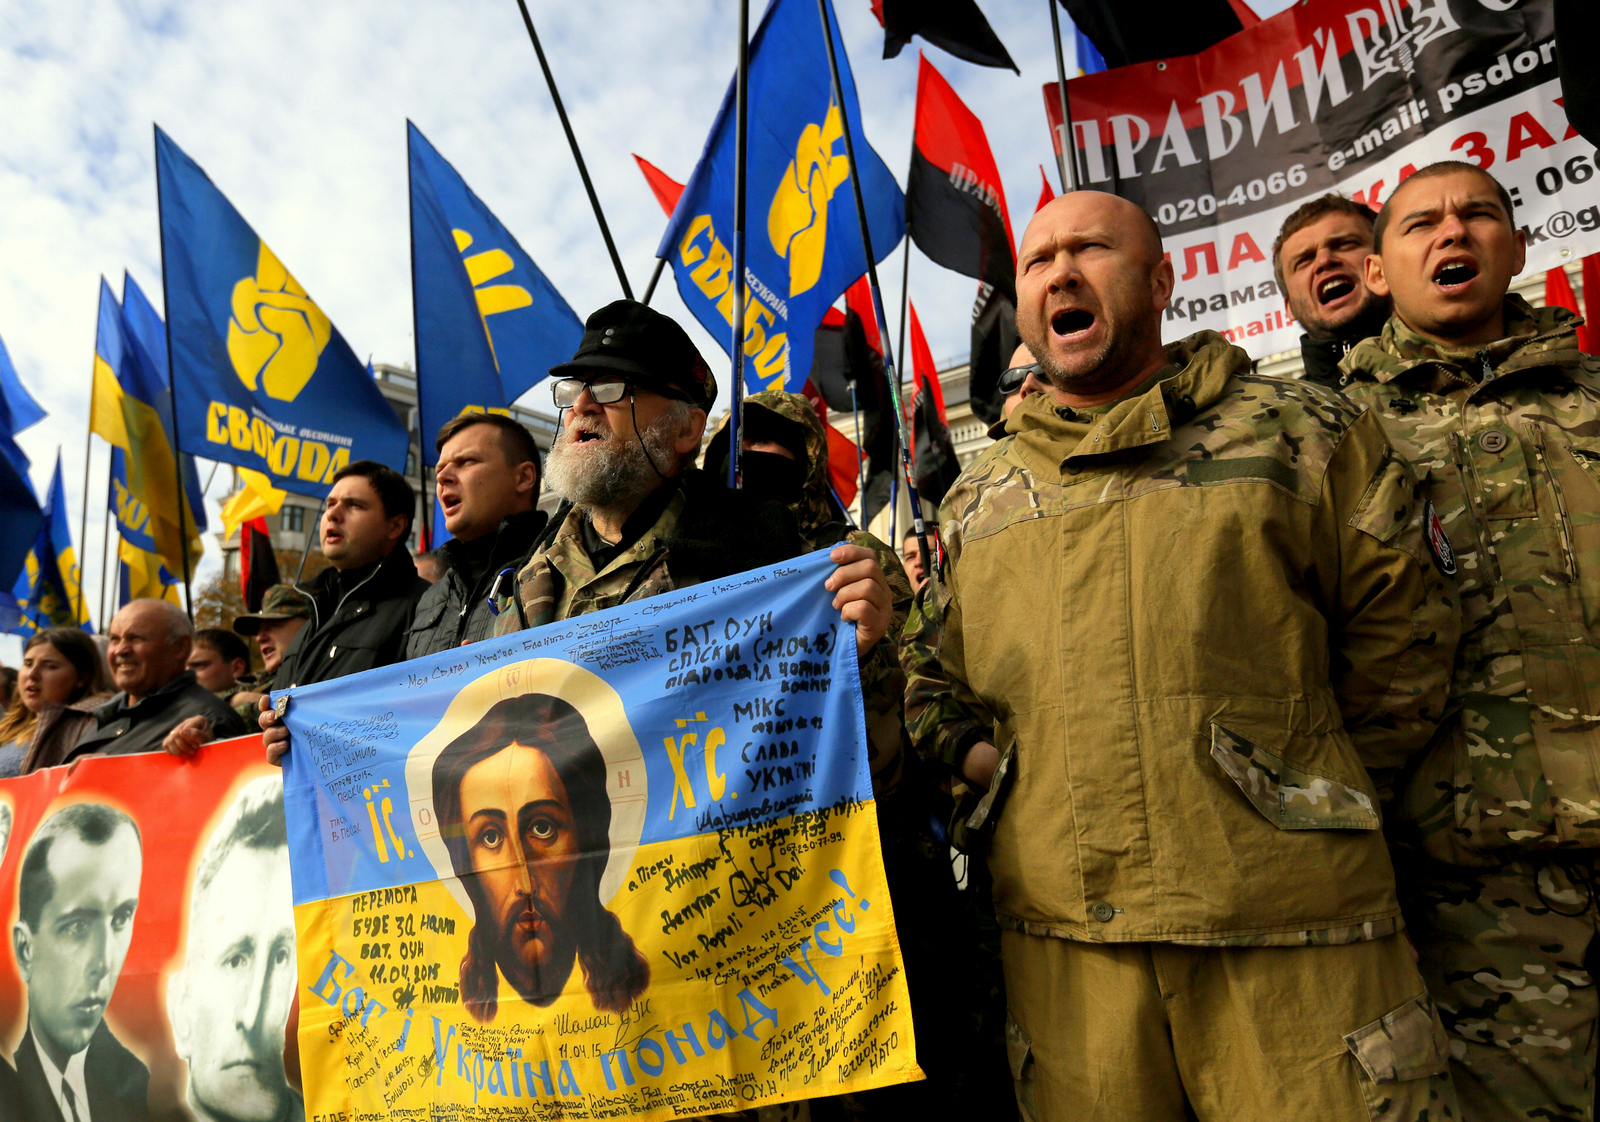 Activists of the of nationalist Svoboda (Freedom) party and members of the Right Sector shout slogans during a rally in Kiev, Ukraine, Wednesday Oct. 14, 2015. Ukraine is marking Defender of the Fatherland Day. (AP Photo/Sergei Chuzavkov)